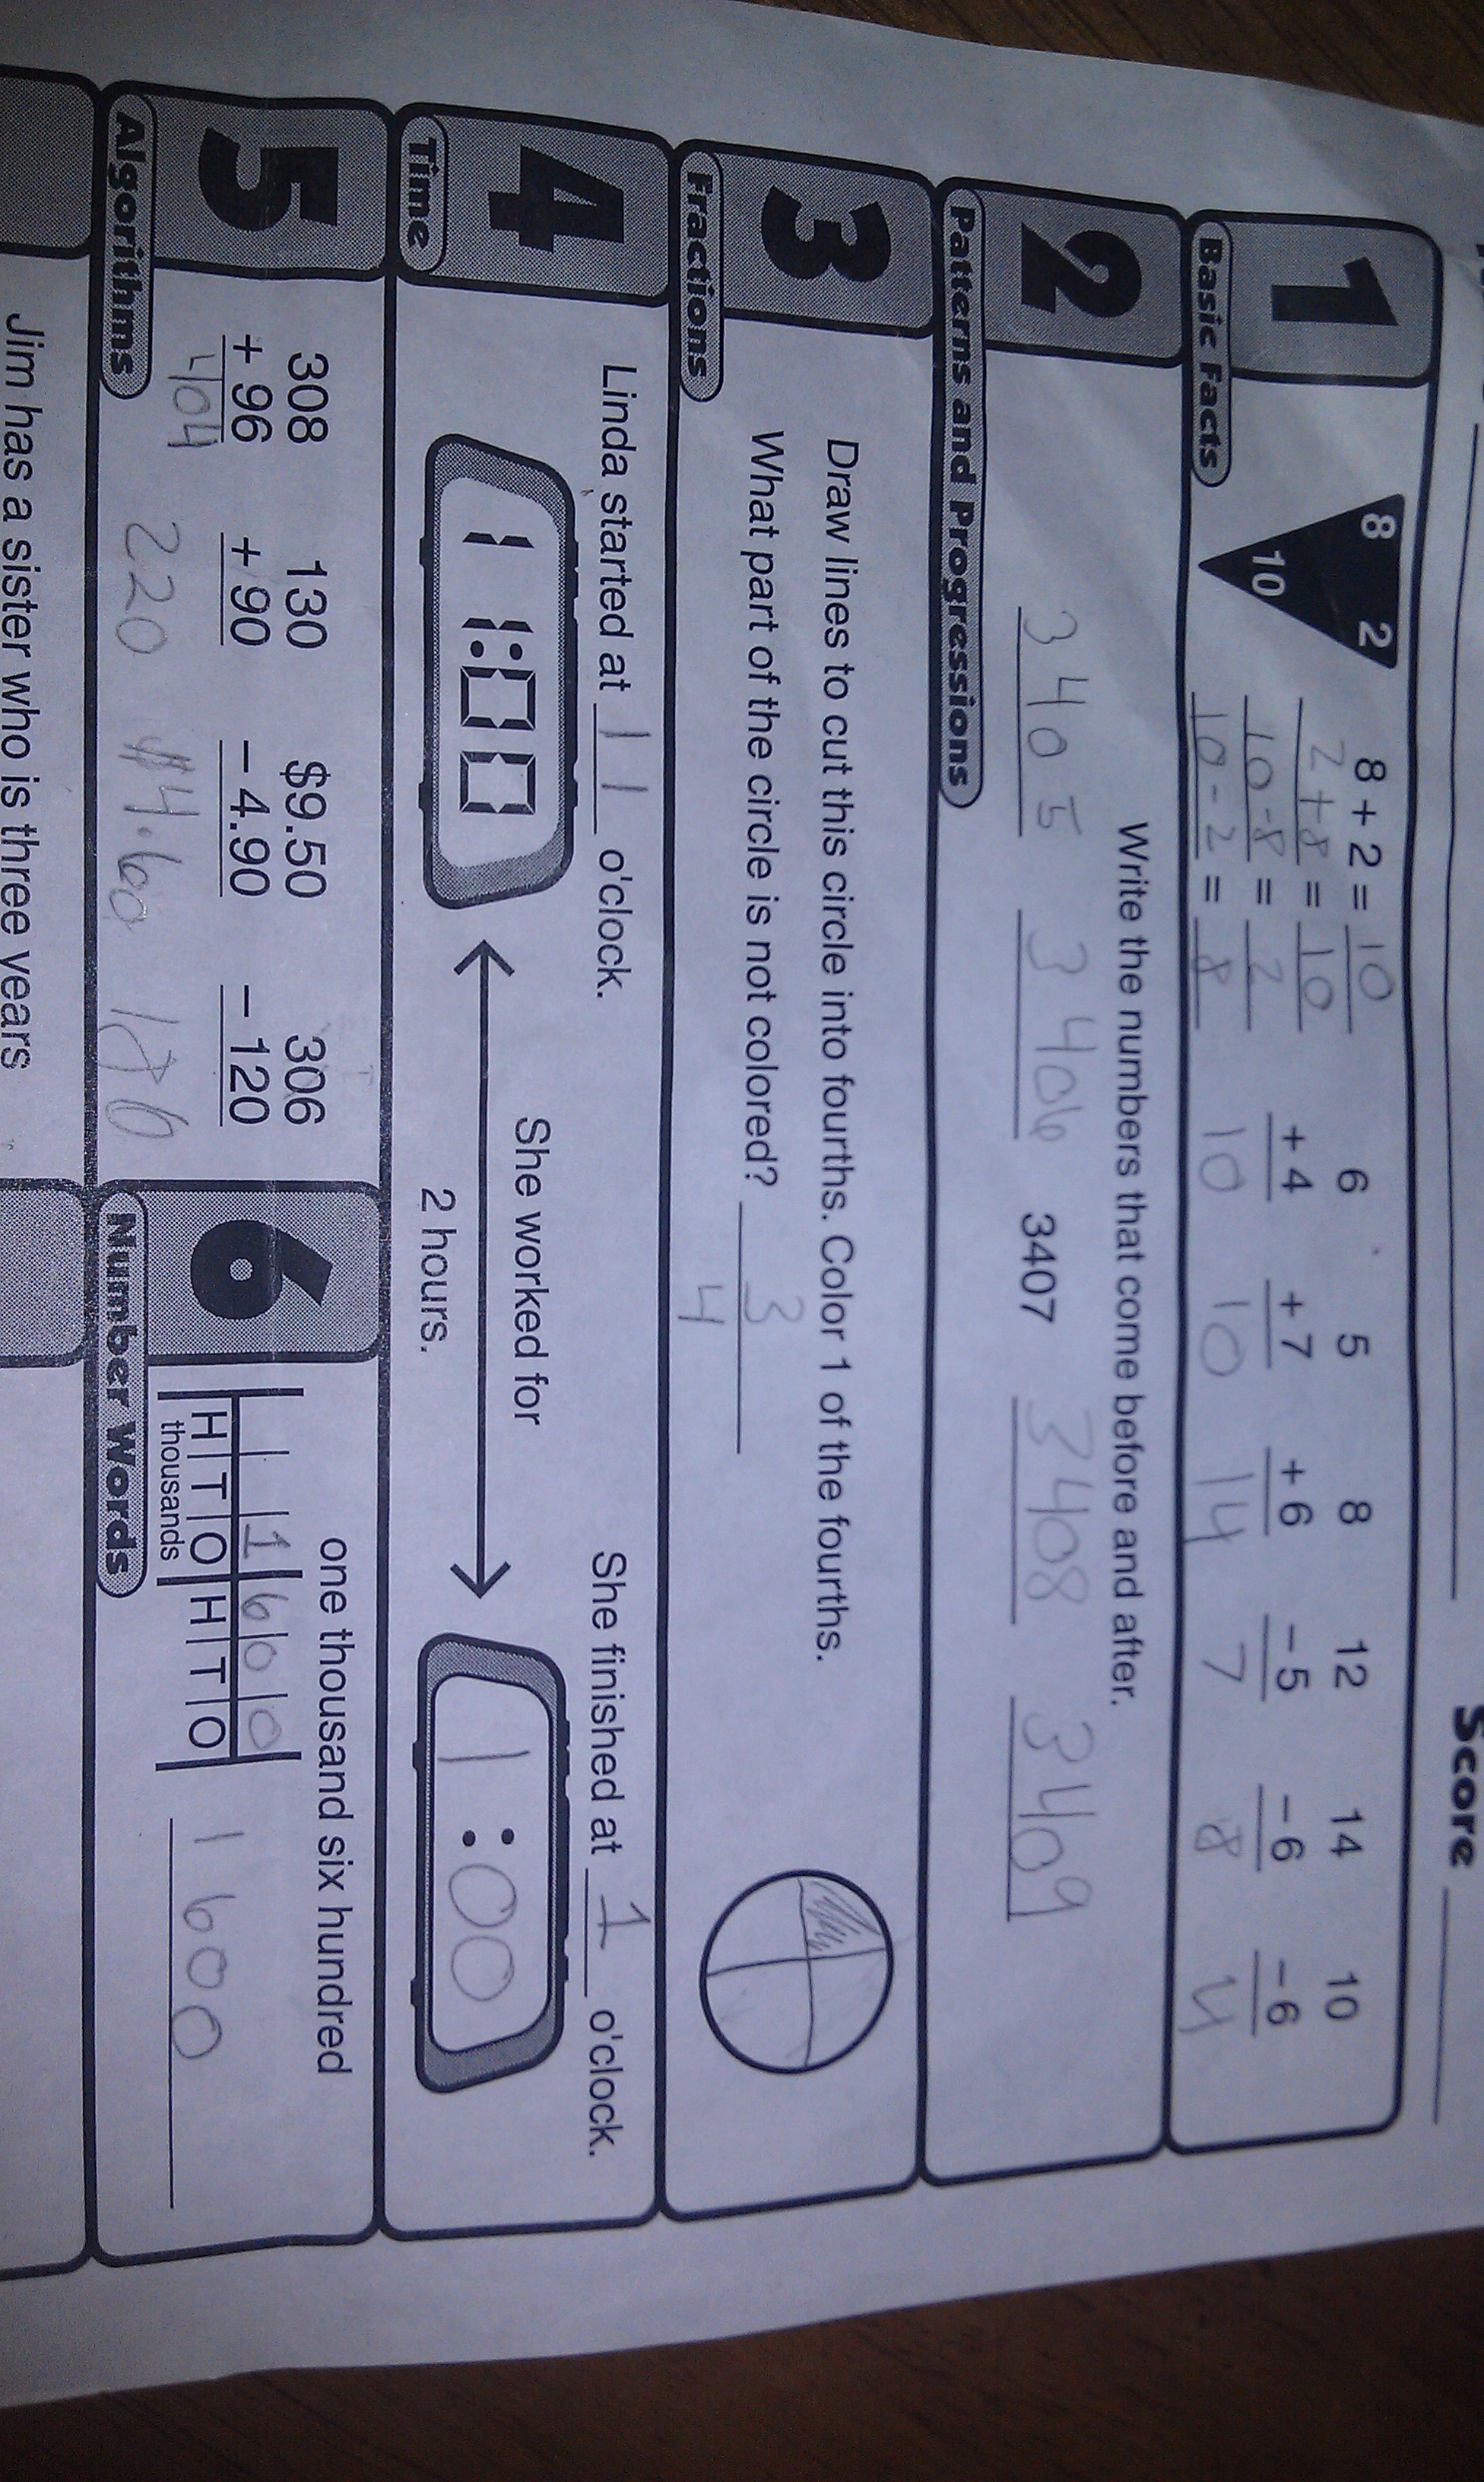 Elementary School Paper Equivalence Of Khan Academy Who